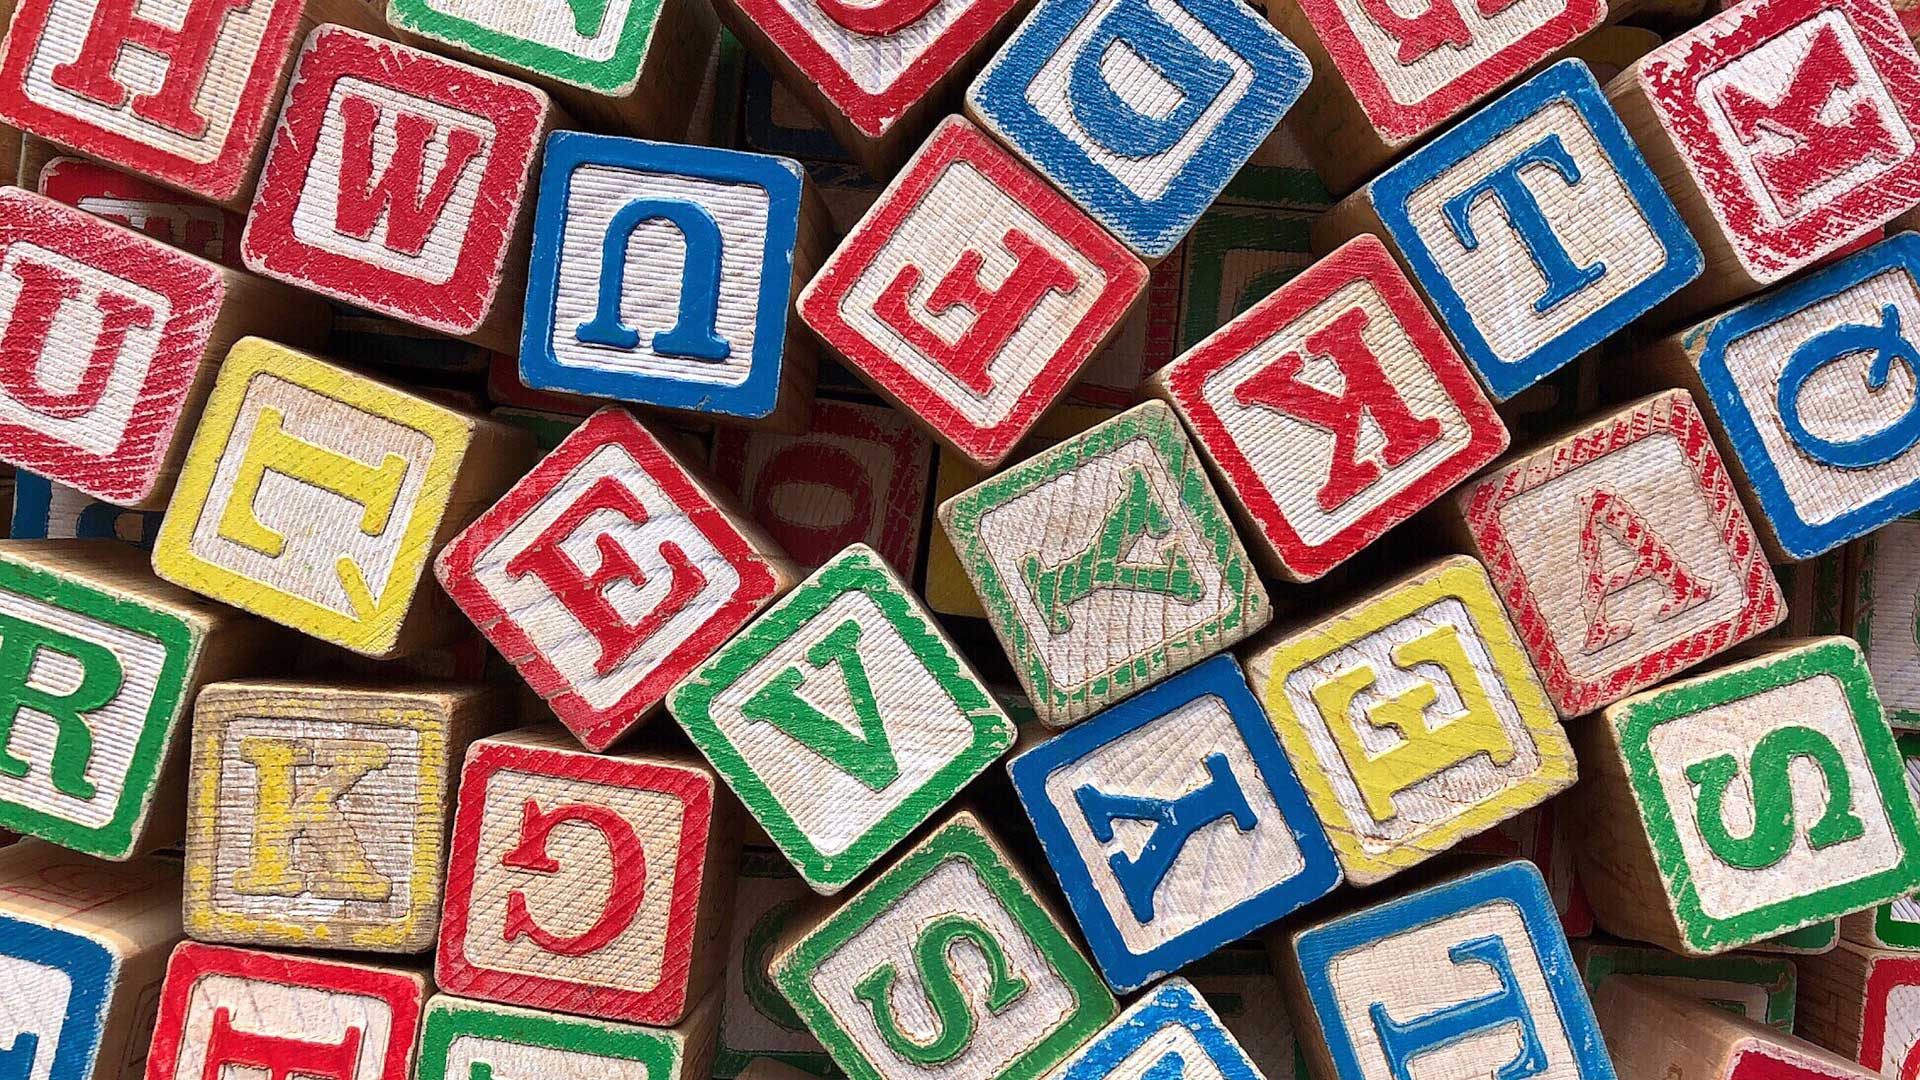 Toy blocks with letters on them.